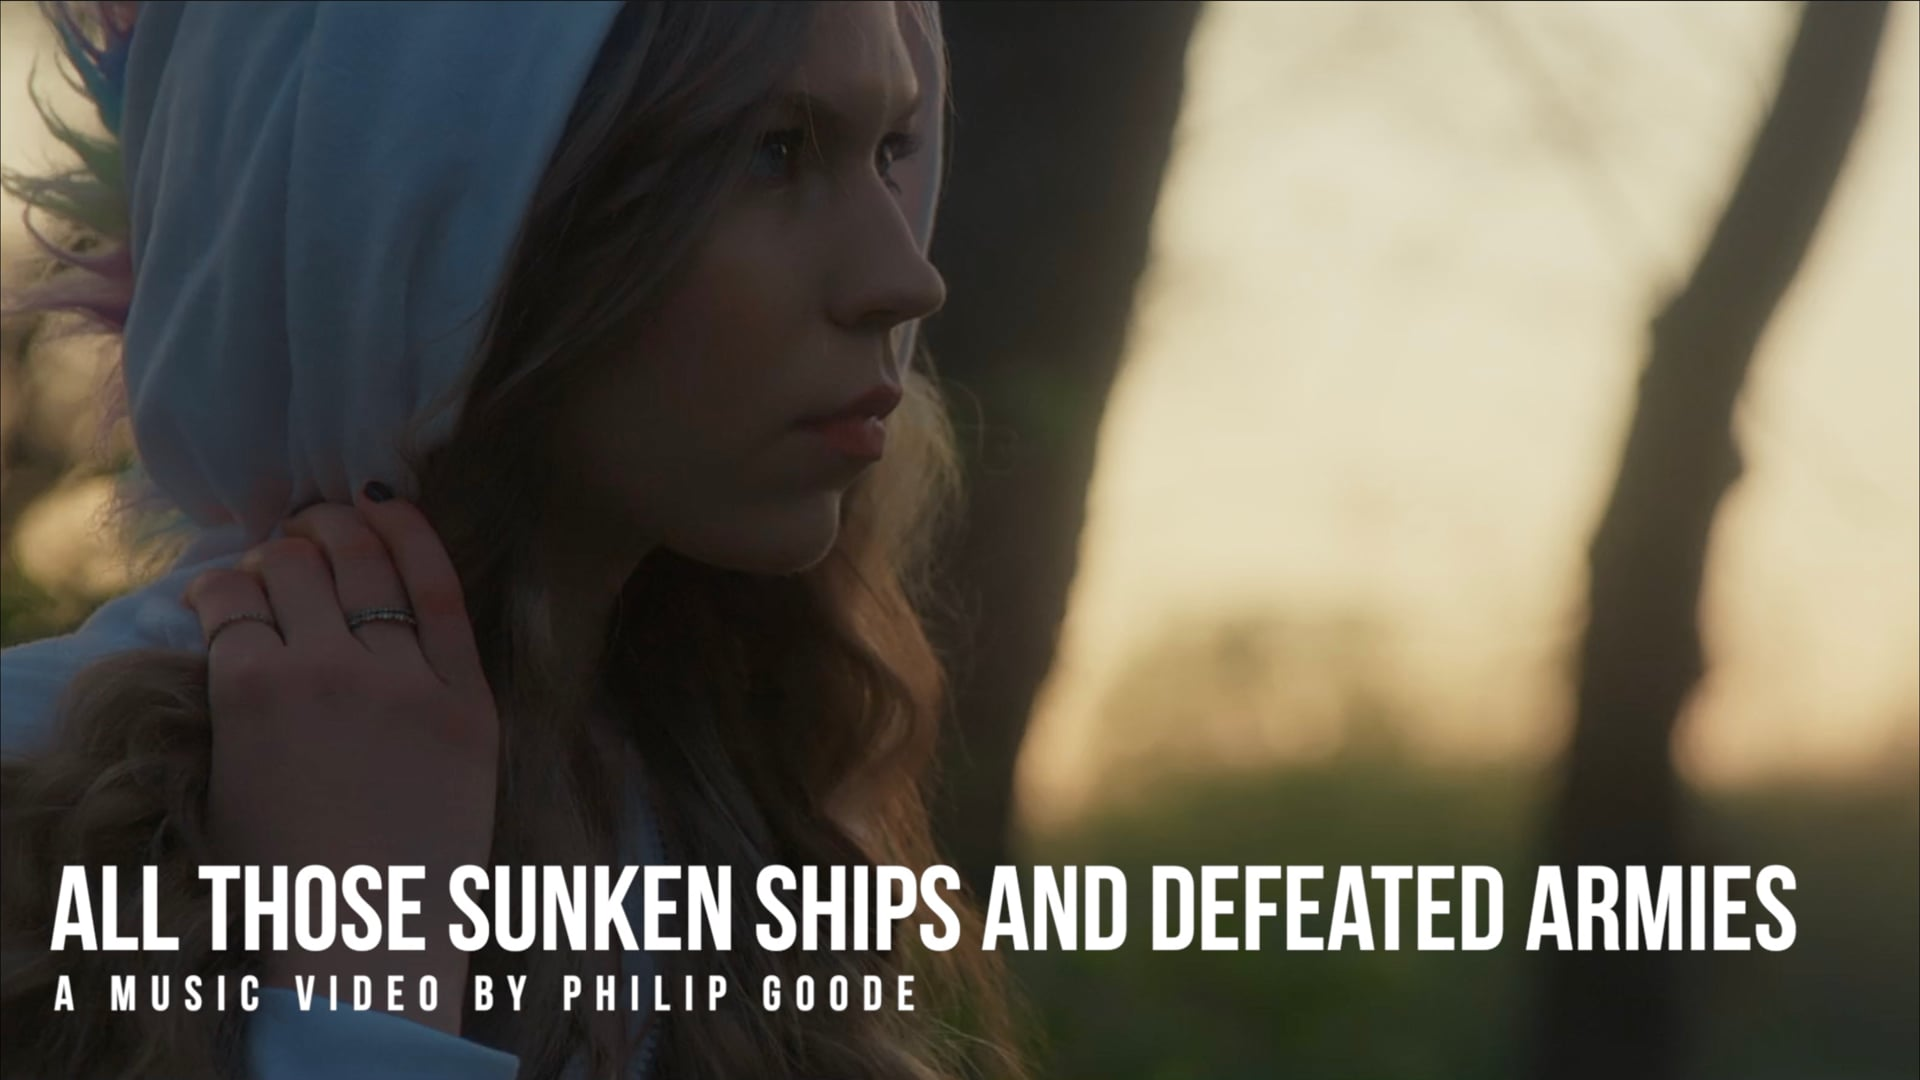 All Those Sunken Ships and Defeated Armies by Just A Mess | MUSIC VIDEO